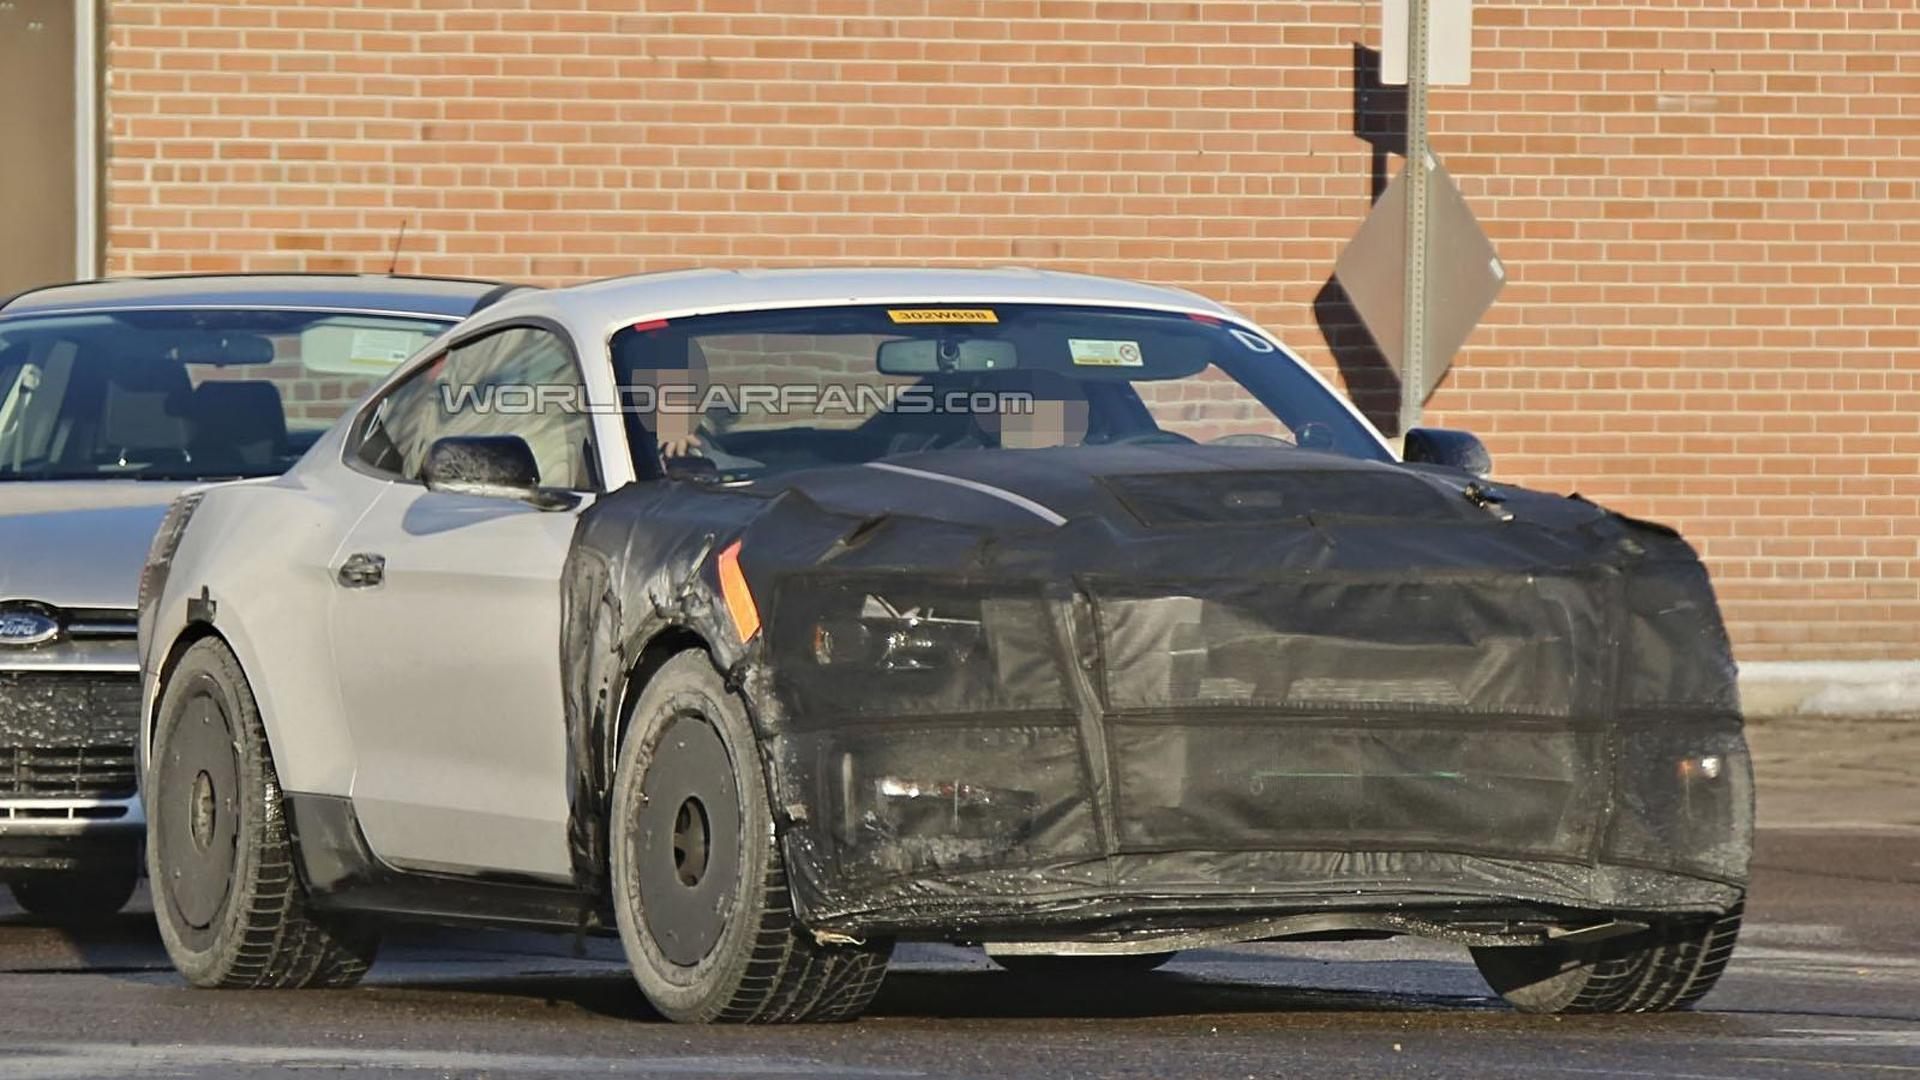 2016 Ford Mustang Shelby GT350 GT500 spied wearing less disguise